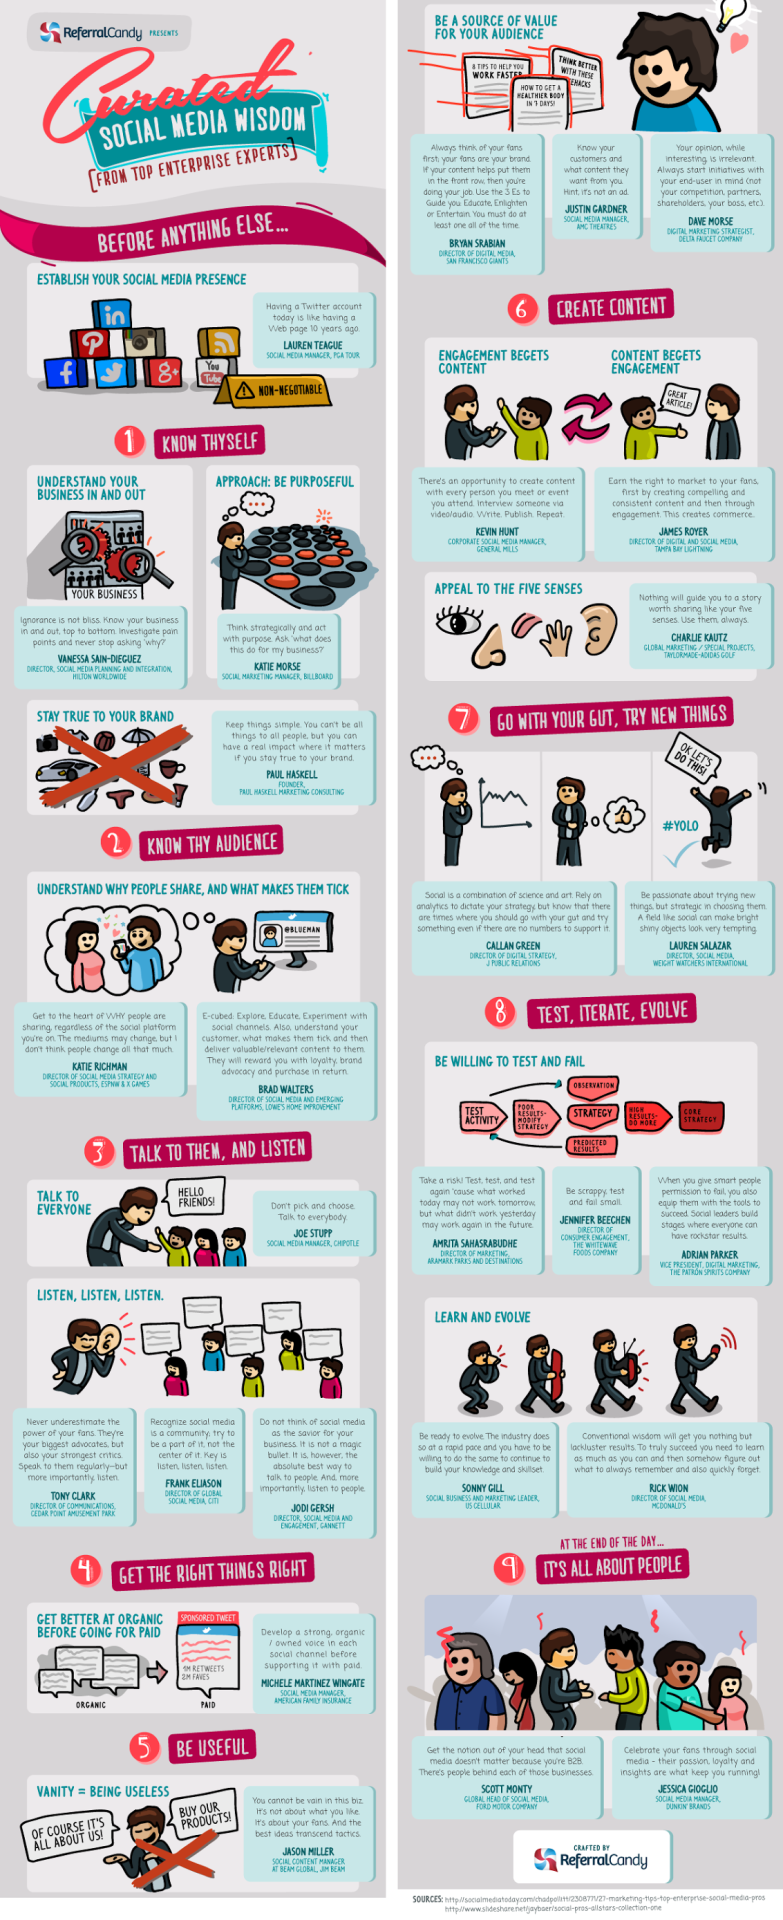 "27 Social Media Marketing Tips From Top Enterprise Experts   To enlarge image ->   i.imgur.com/ffE48UQ.png    Ever wondered, what do top marketing experts know that the rest of us might not be so clear about?   The folks at   +  ReferralCandy   have shared an infographic that covers some of the highlights from New York Times best selling author   +  Jay Baer  's ebook, in which he interviewed 27 top enterprise digital marketers about their wins and losses.   Here are some key takeaways:   ""Before anything else… establish your social media presence. Understand your business in and out. Understand why people share and what makes them tick. Talk to them and Listen. Get better at organic before going for paid. Be a source of a value for your audience. Create great content. Be willing to test and fail.""   Pin it:   http://www.pinterest.com/pin/381539399654399183/    Source:   http://blog.referralcandy.com/2014/05/19/curated-social-media-wisdom-from-top-enterprise-experts-infographic/    #socialmediatips   http://click-to-read-mo.re/p/7o3V/53413f12"